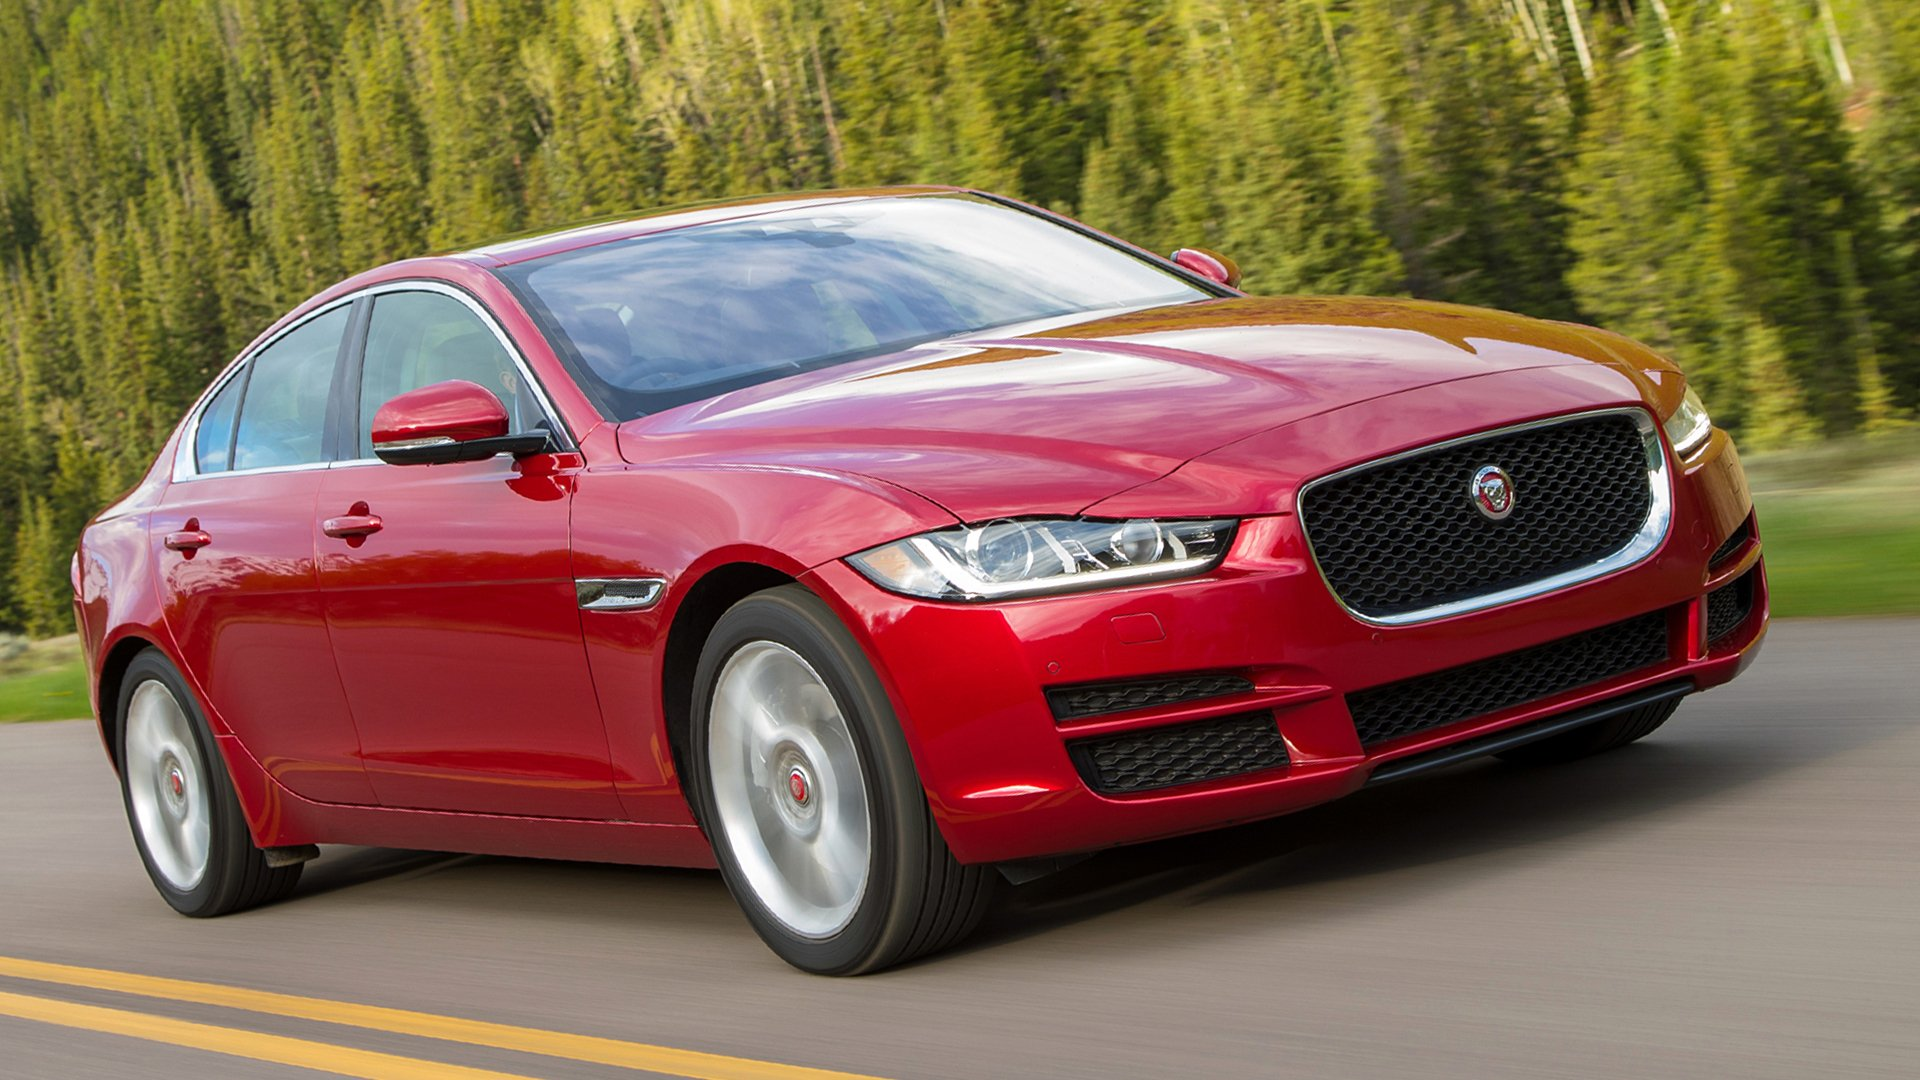 Pictures for Desktop Jaguar XE HD